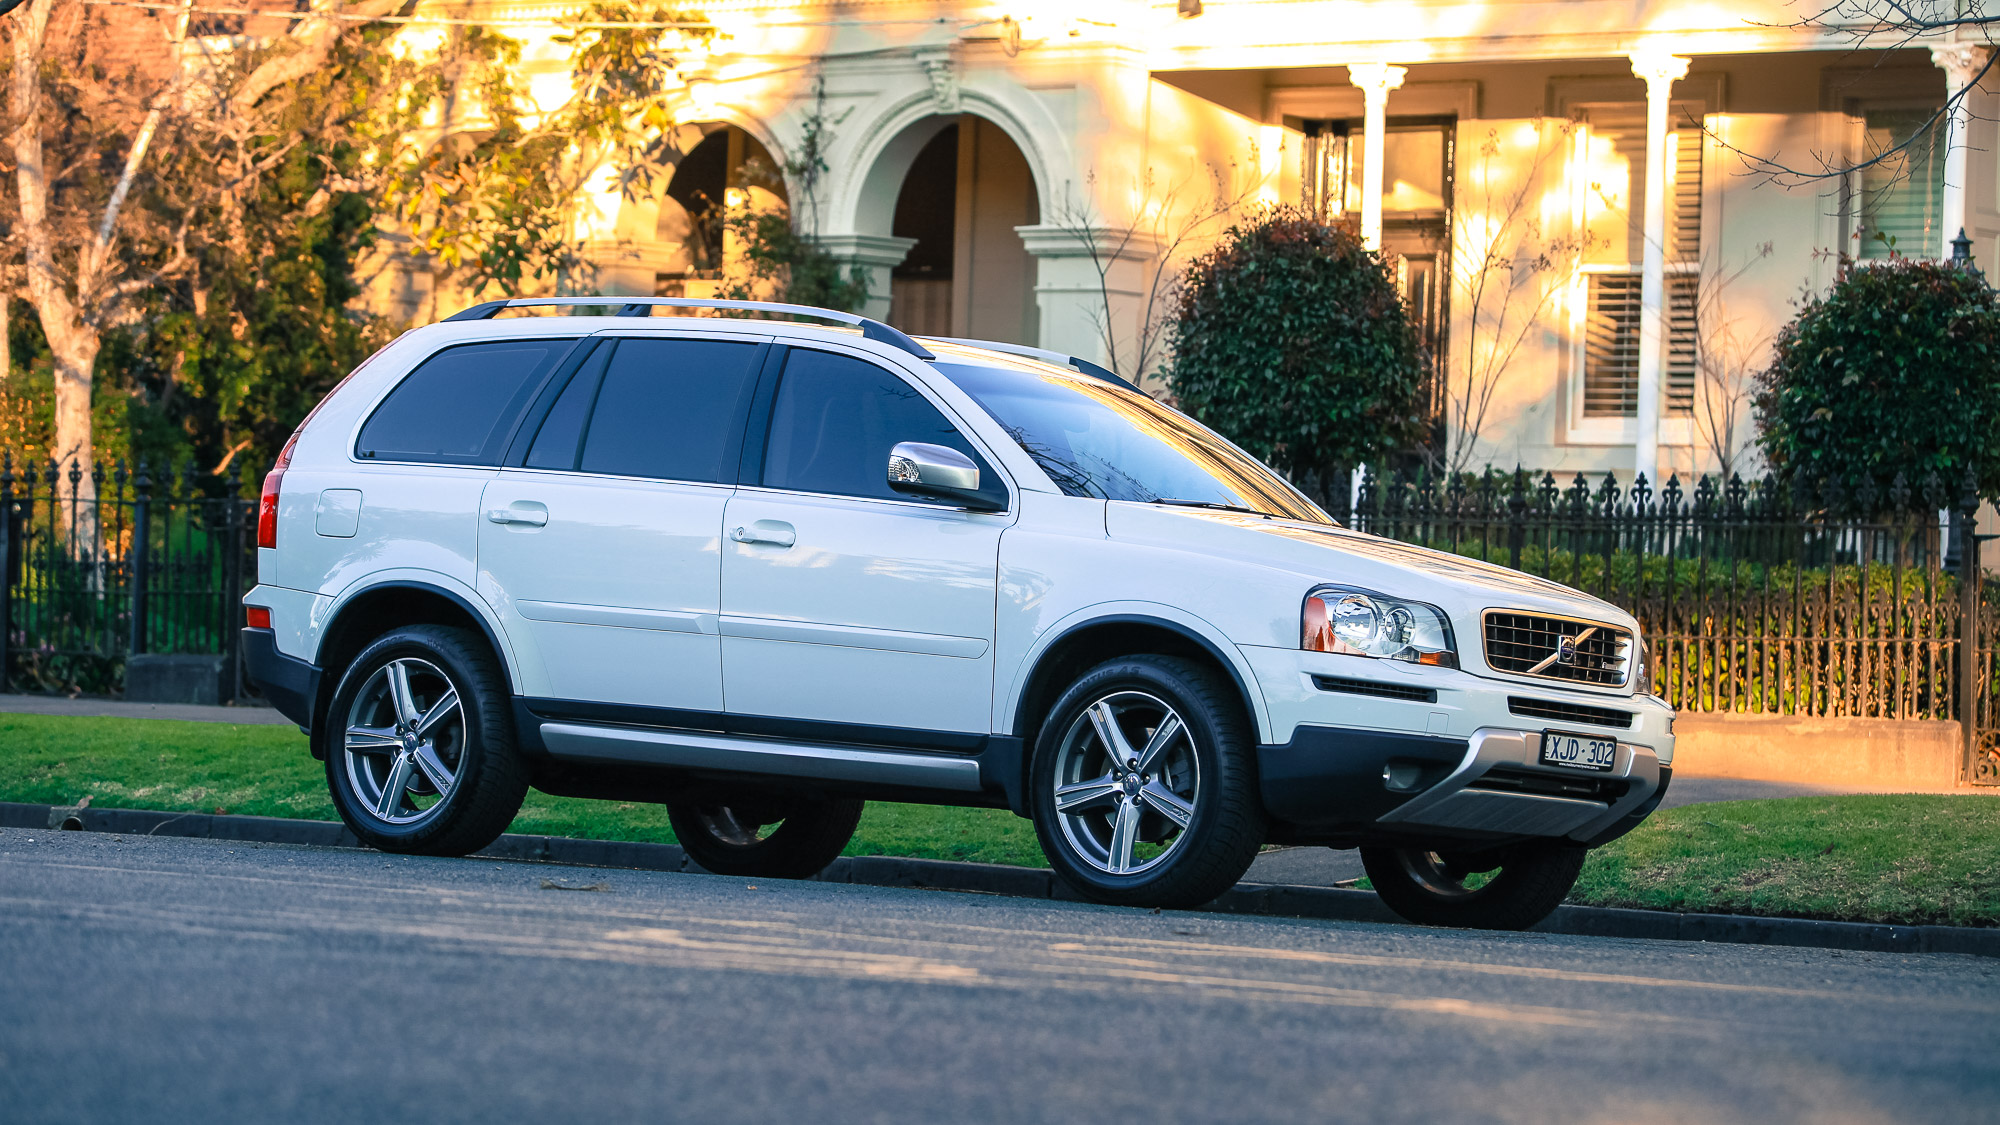 2015 volvo xc90 review run out round up photos caradvice. Black Bedroom Furniture Sets. Home Design Ideas